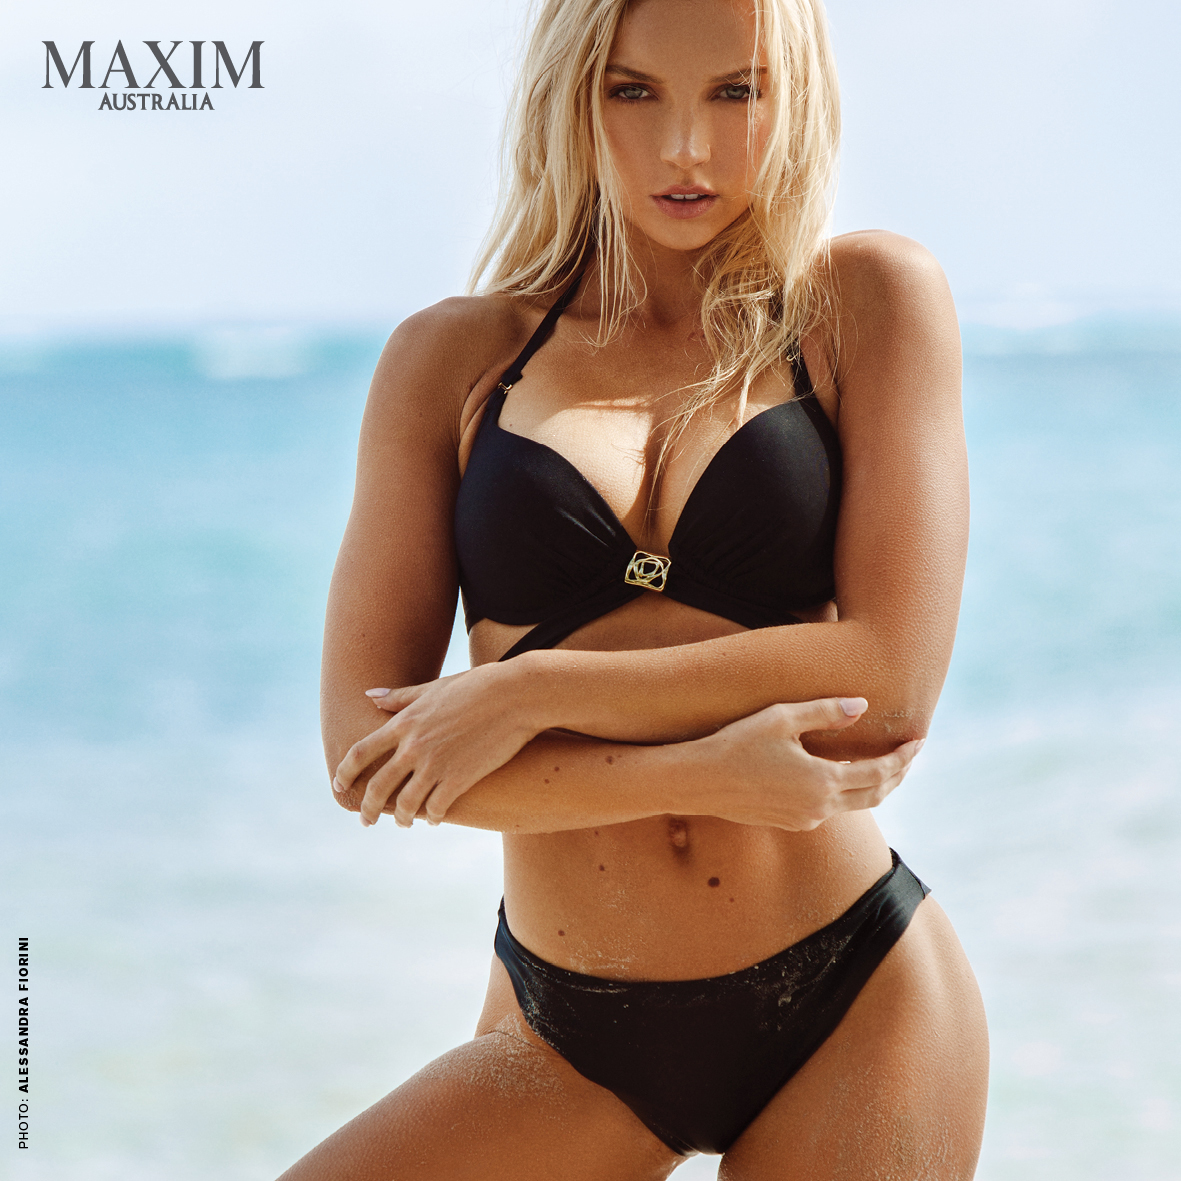 Maxim-New-Zealand-Alison-Bowles-2